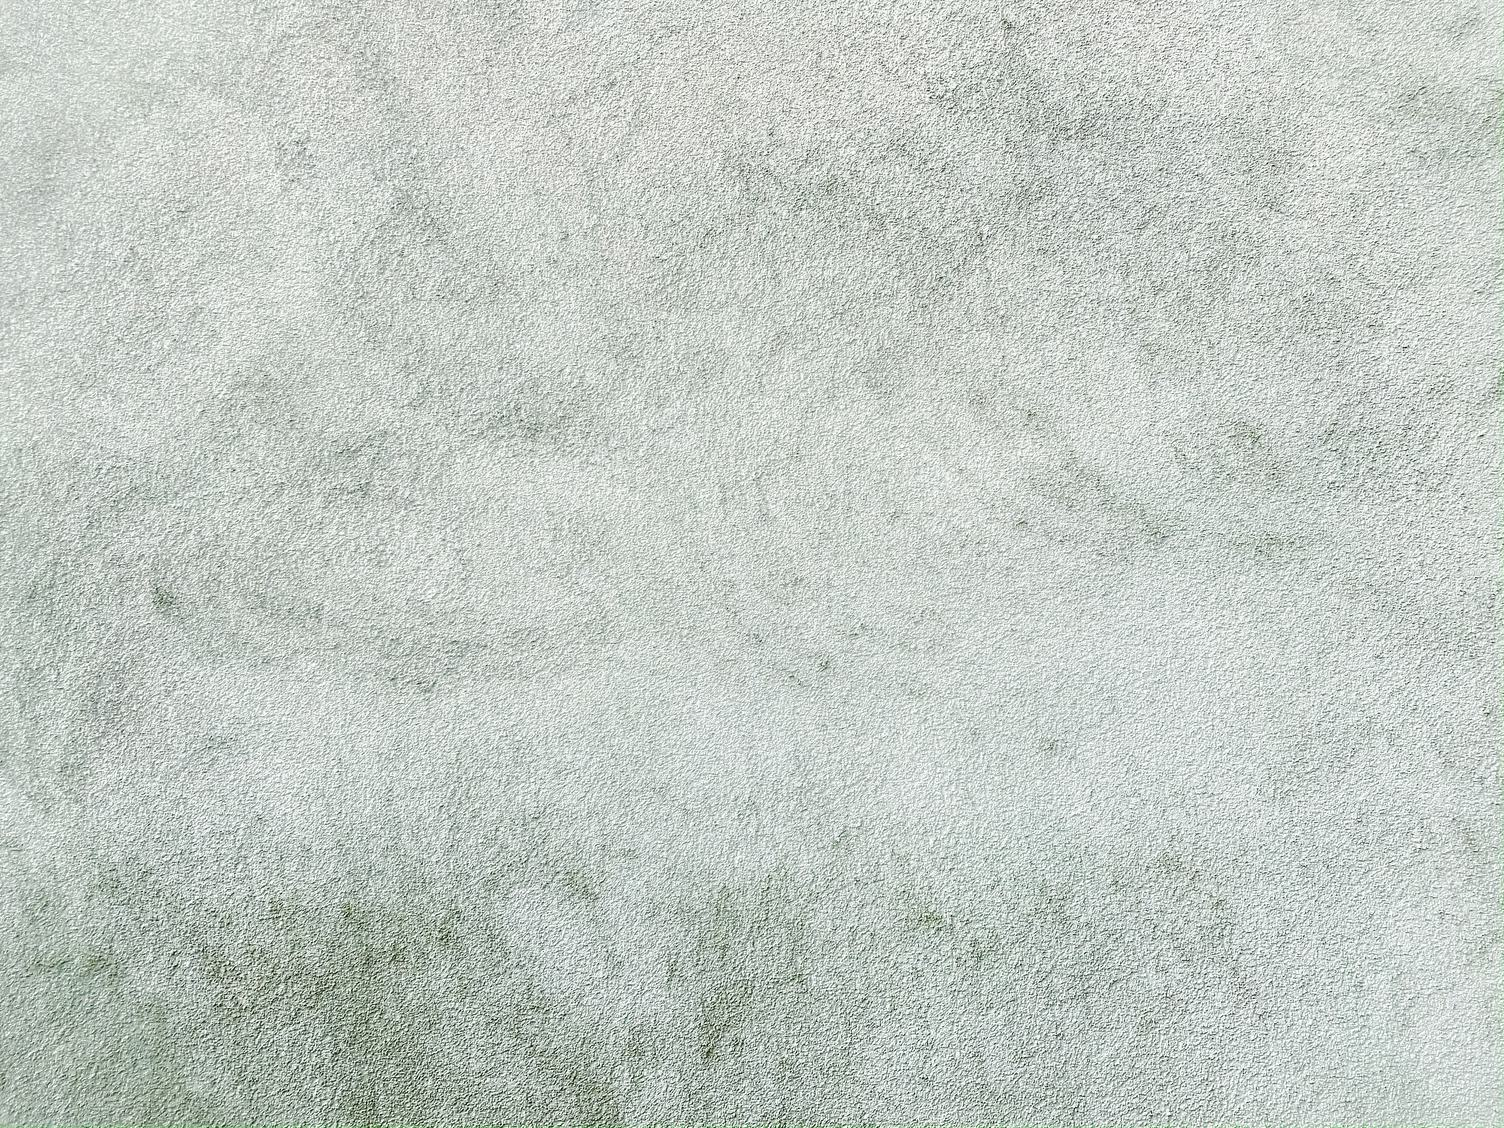 Gray Dirty Wall Texture